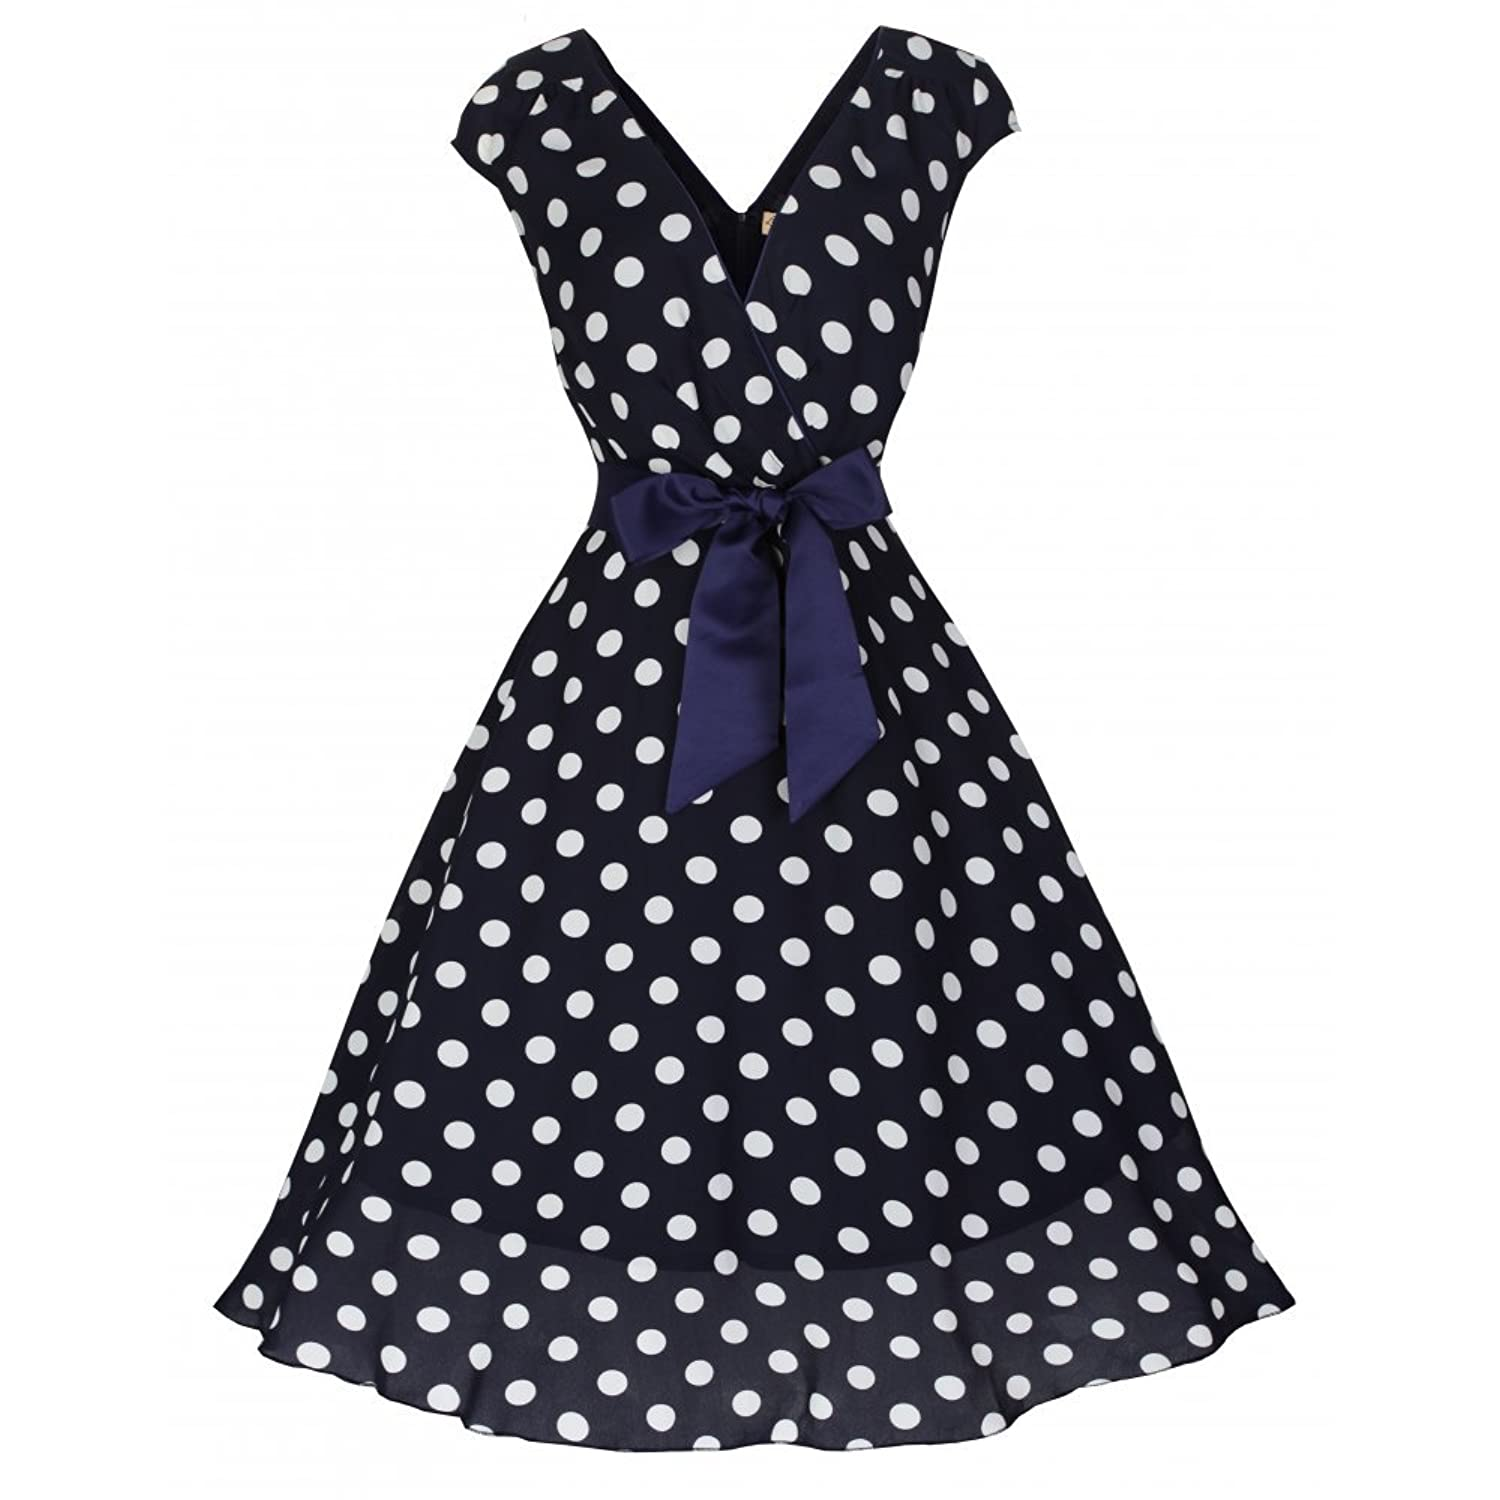 Vintage Polka Dot Dresses – Ditsy 50s Prints Lindy Bop Mary Ellen Navy Polka Dot Swing Dress £19.60 AT vintagedancer.com